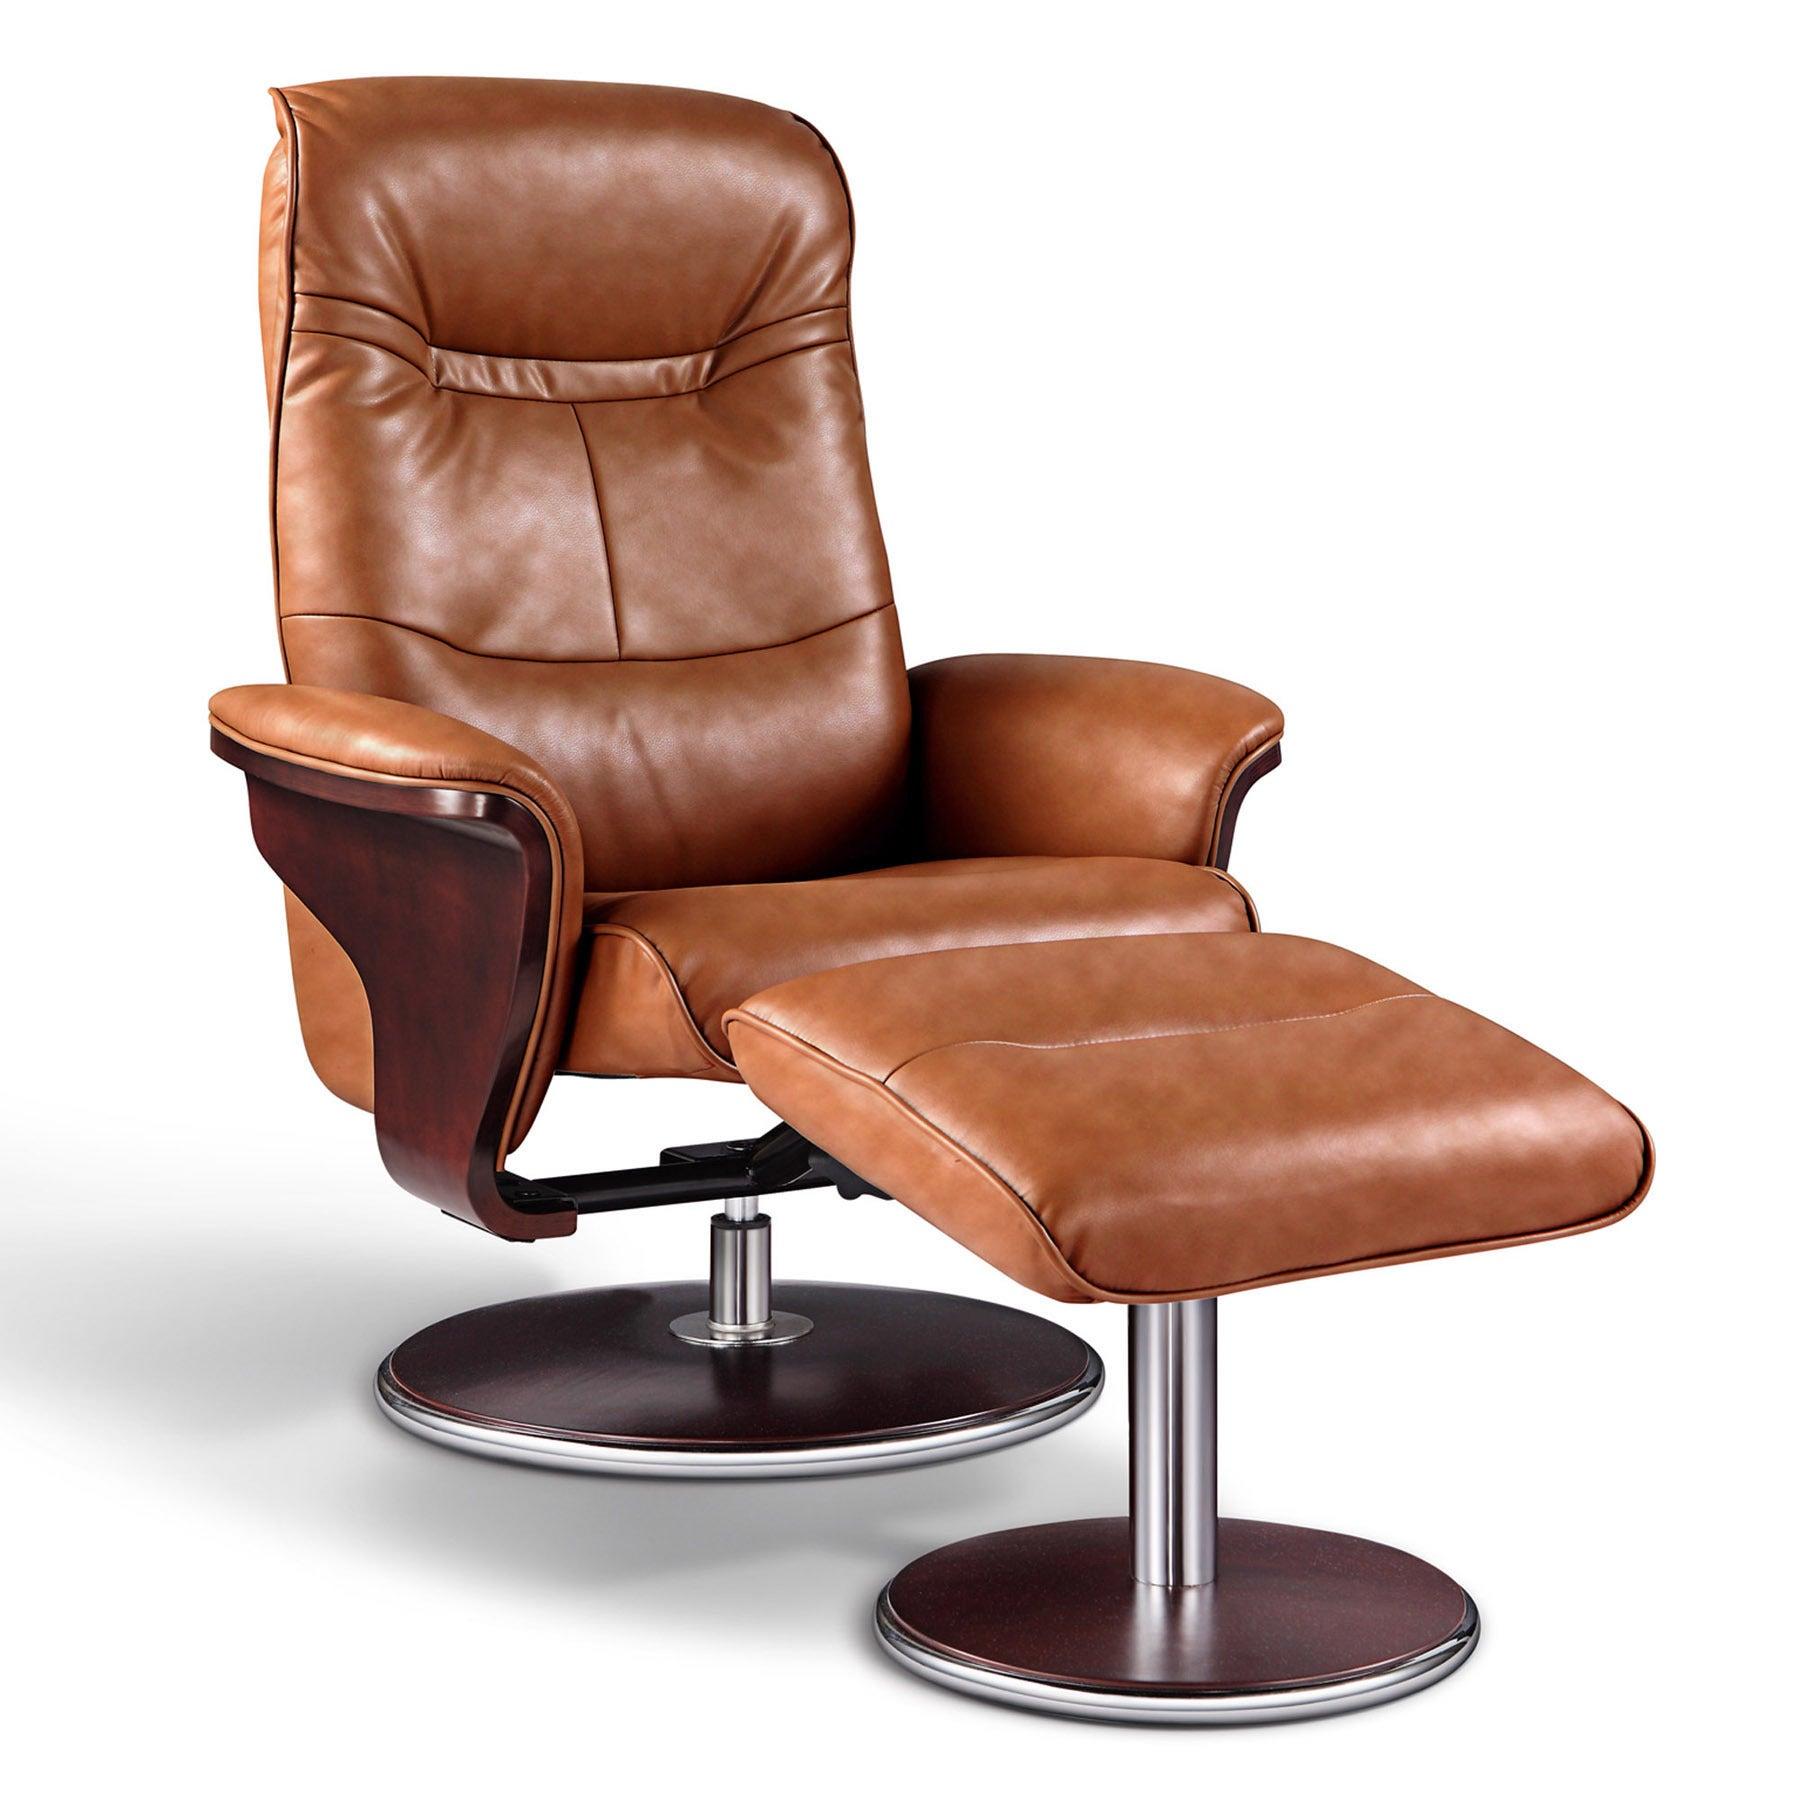 ARTIVA USA 'Milano' Modern Bend Wood Brown Leather Swivel...